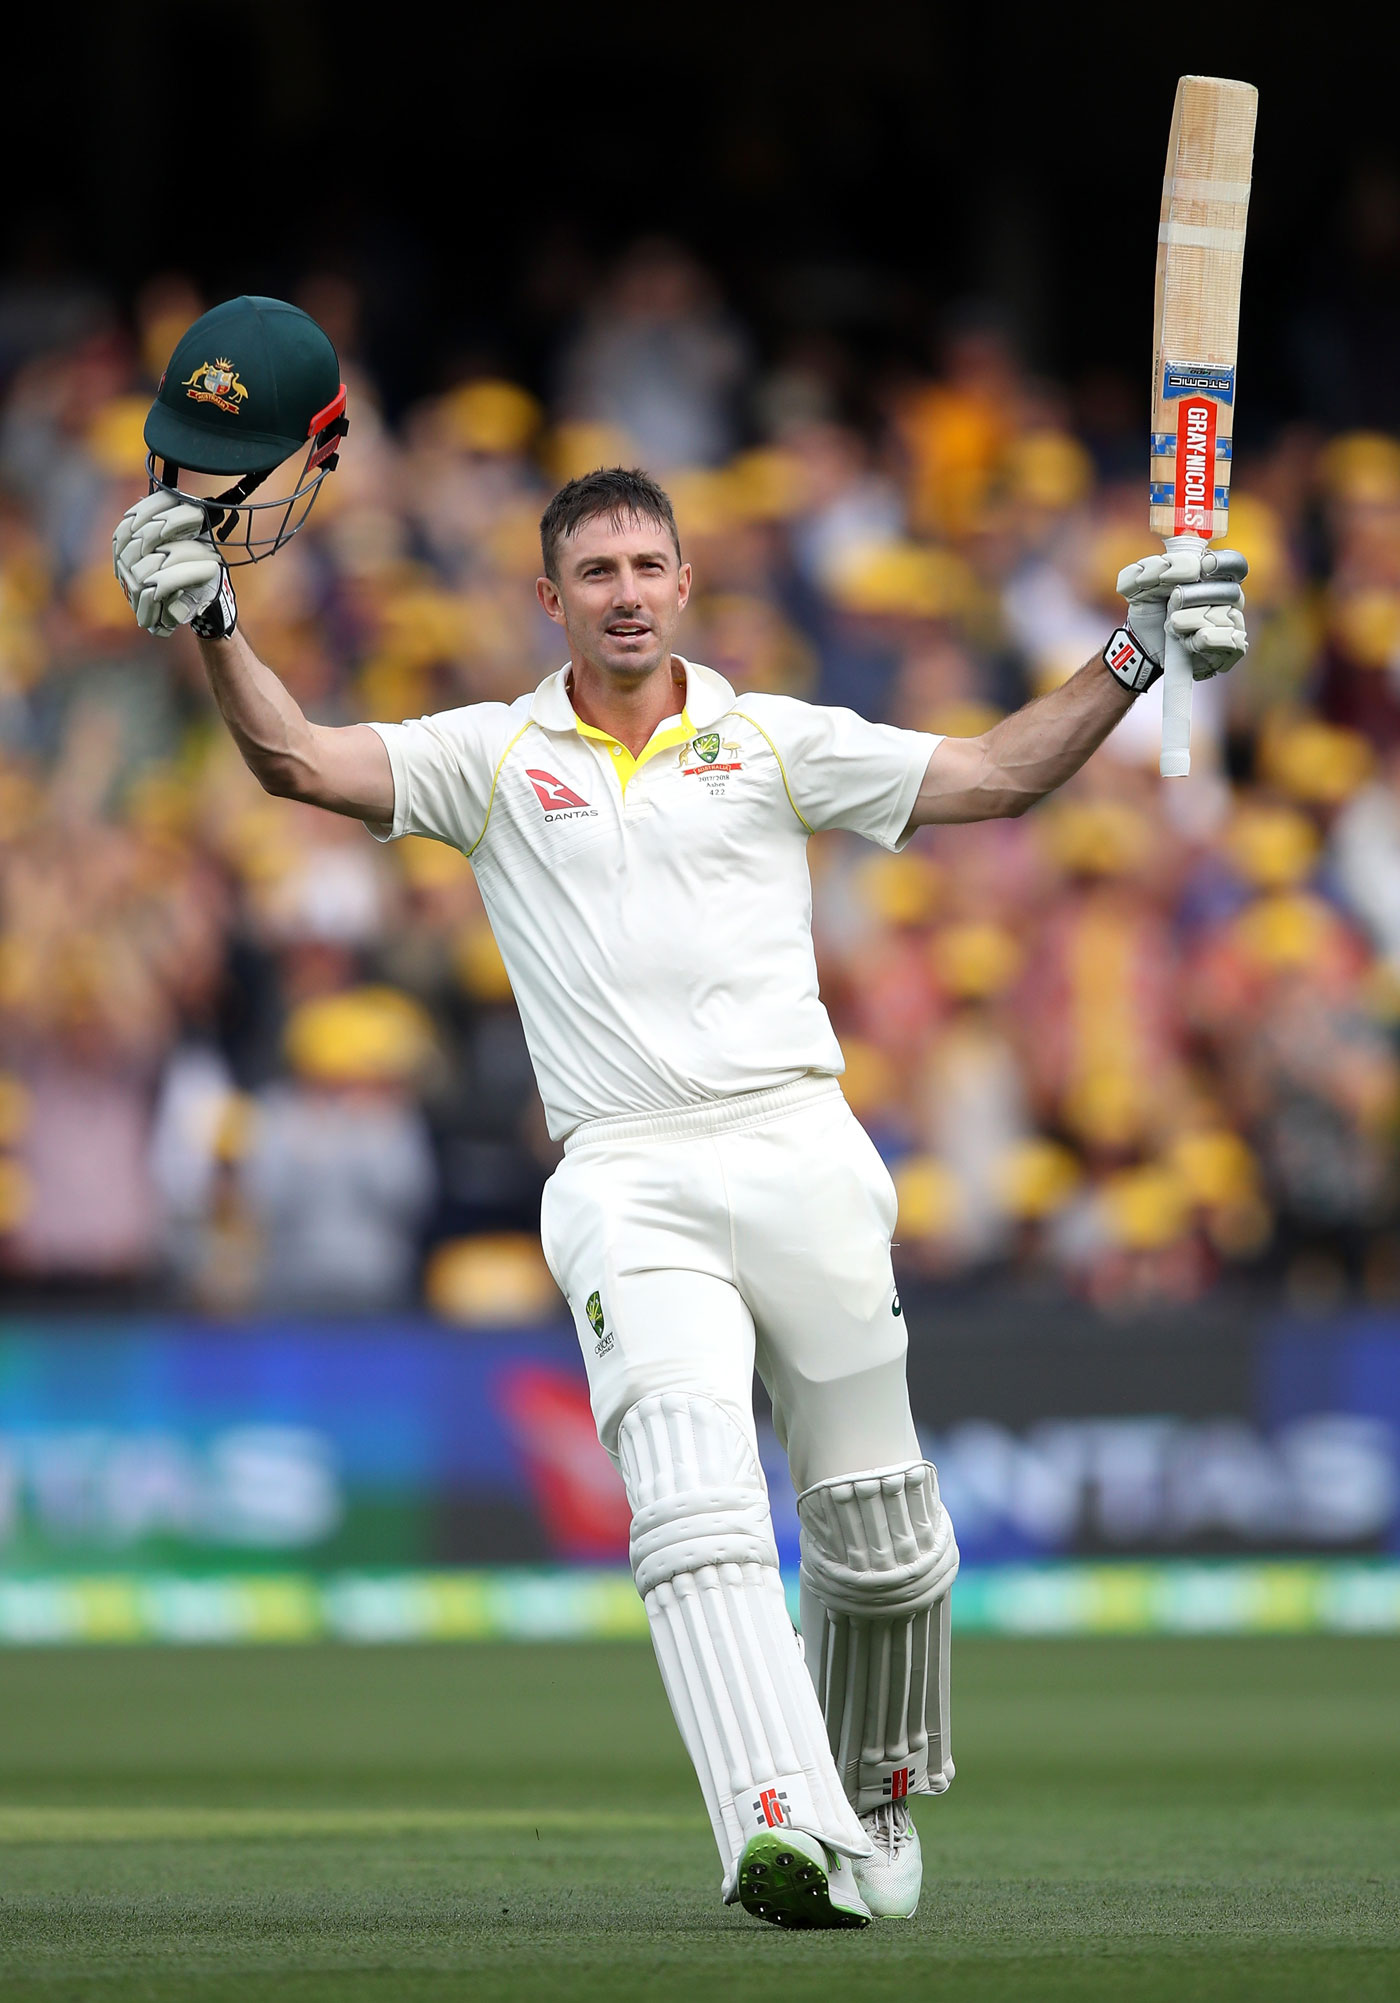 Marsh celebrates Ashes 100